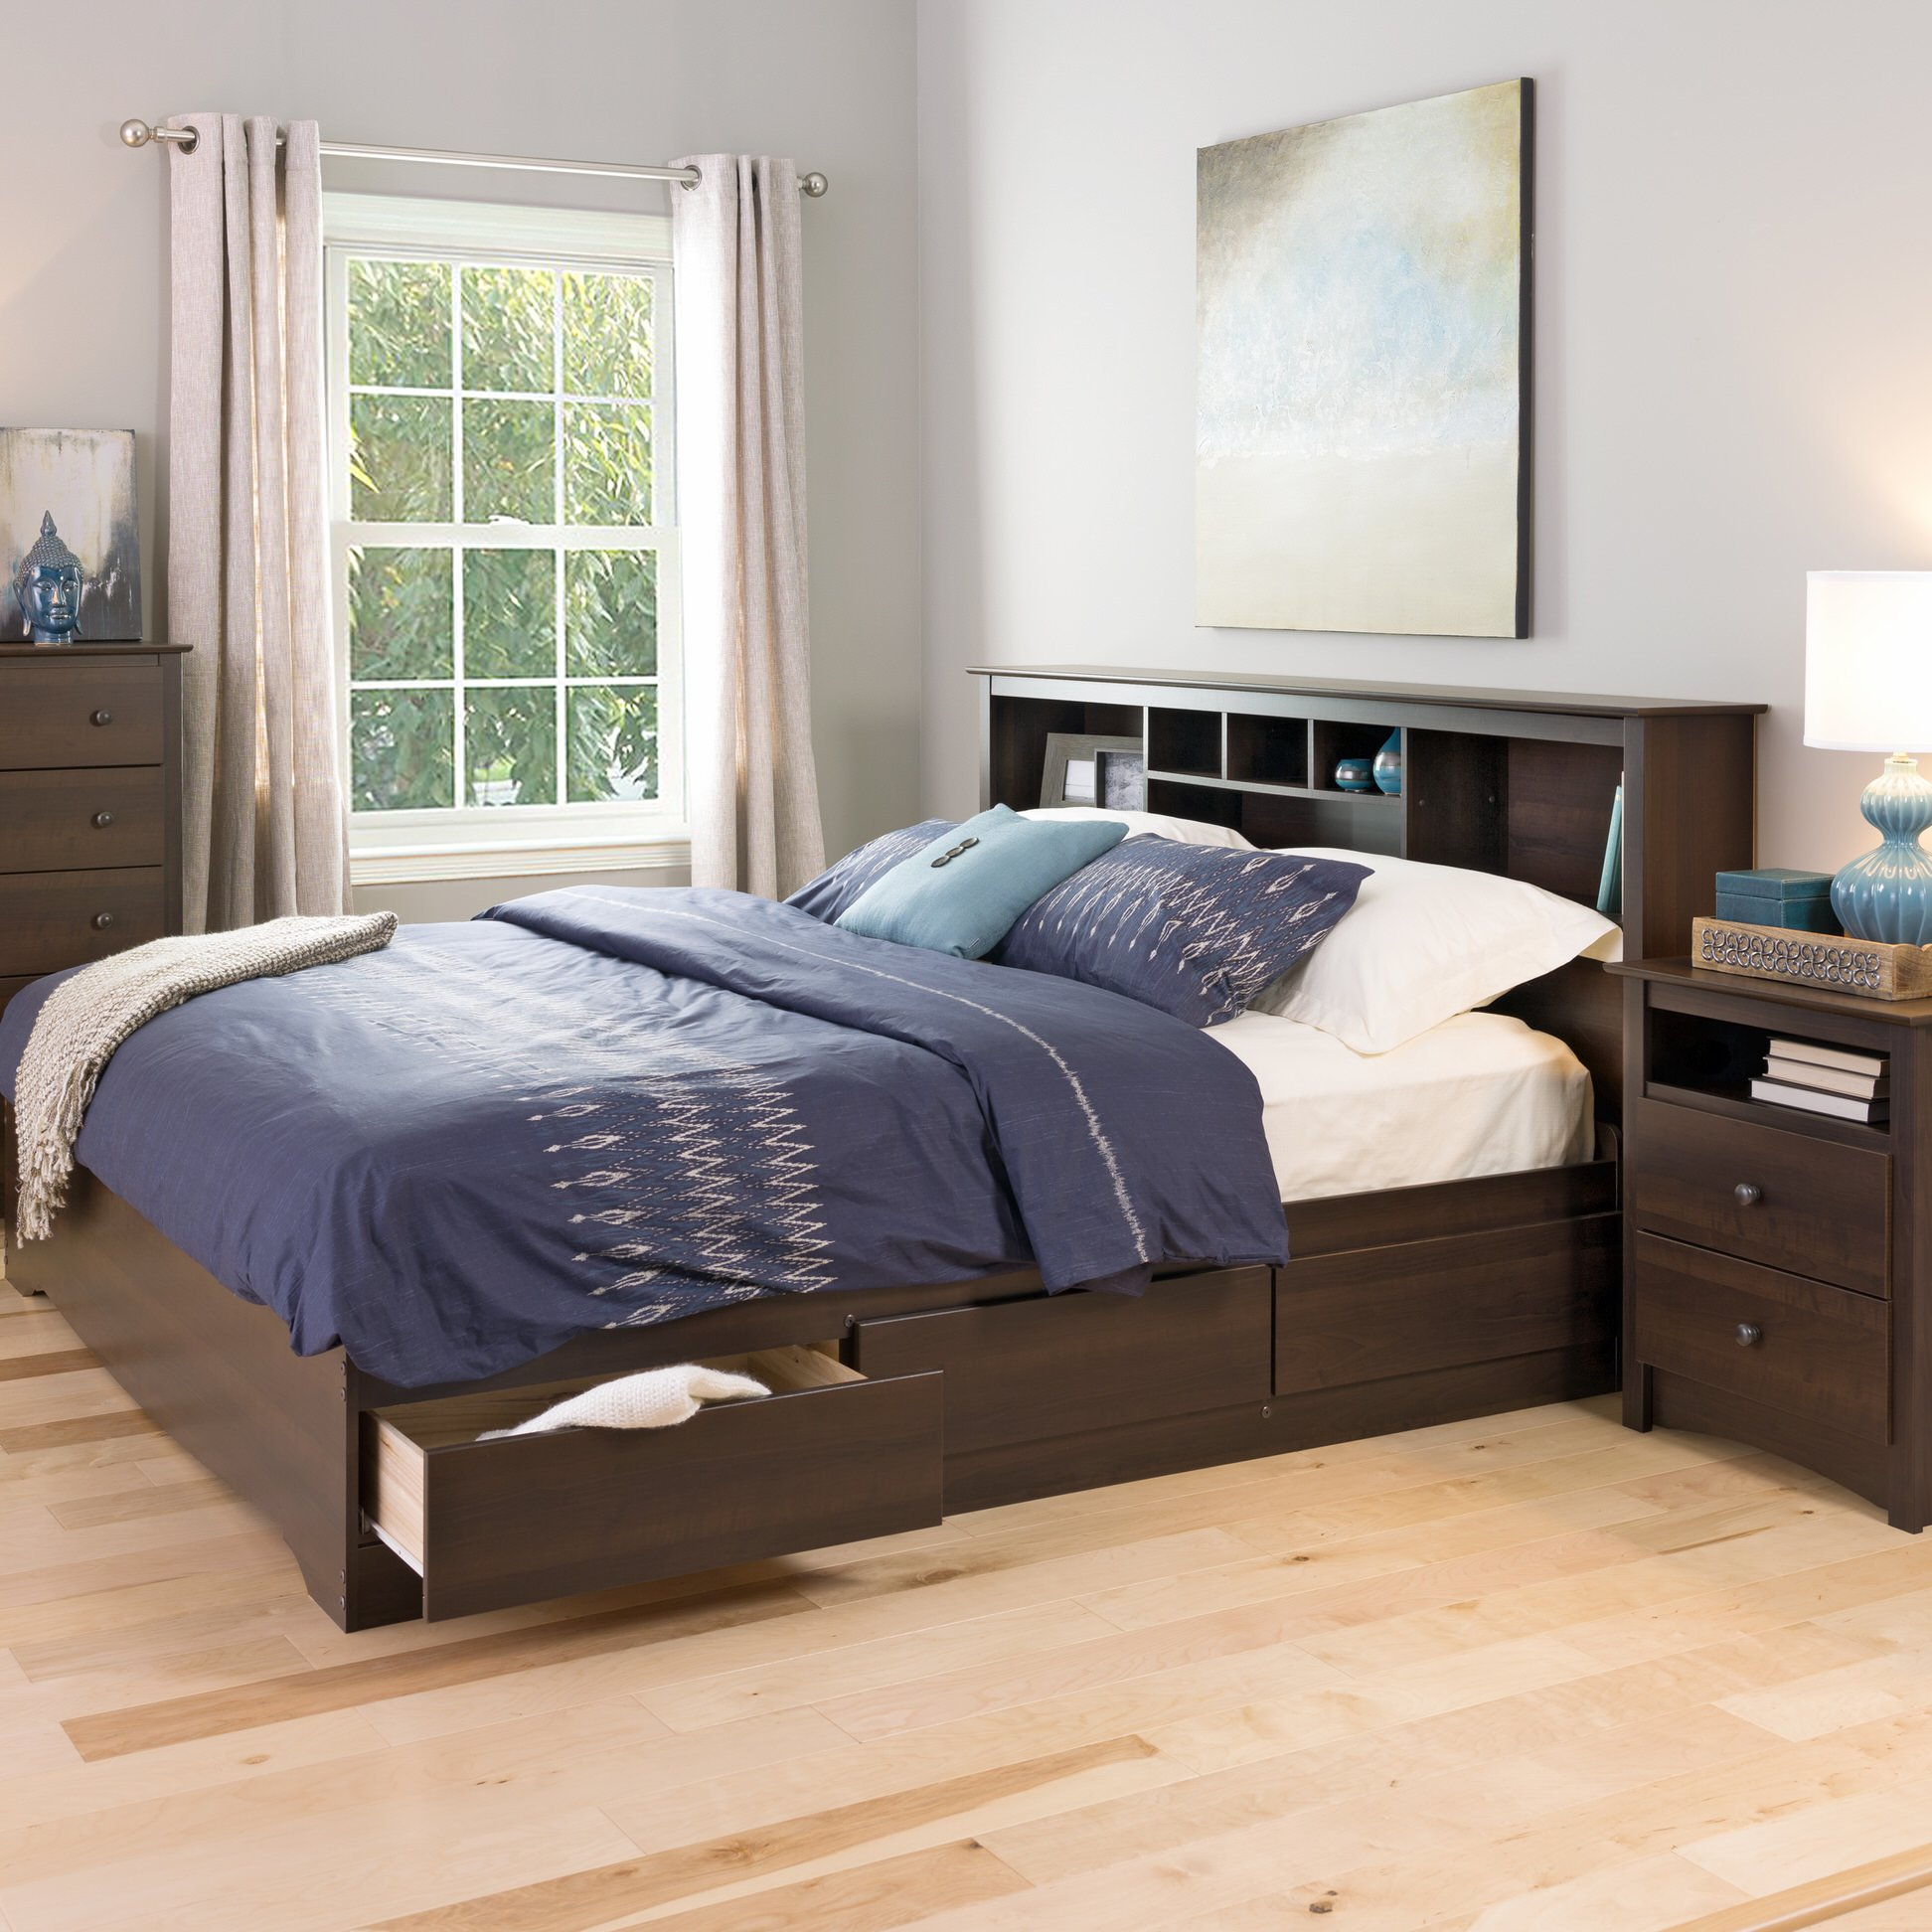 lovely bedroom mattress storage drawers from queen beds with quickly platform and tiffany size drawer incredible survival bed